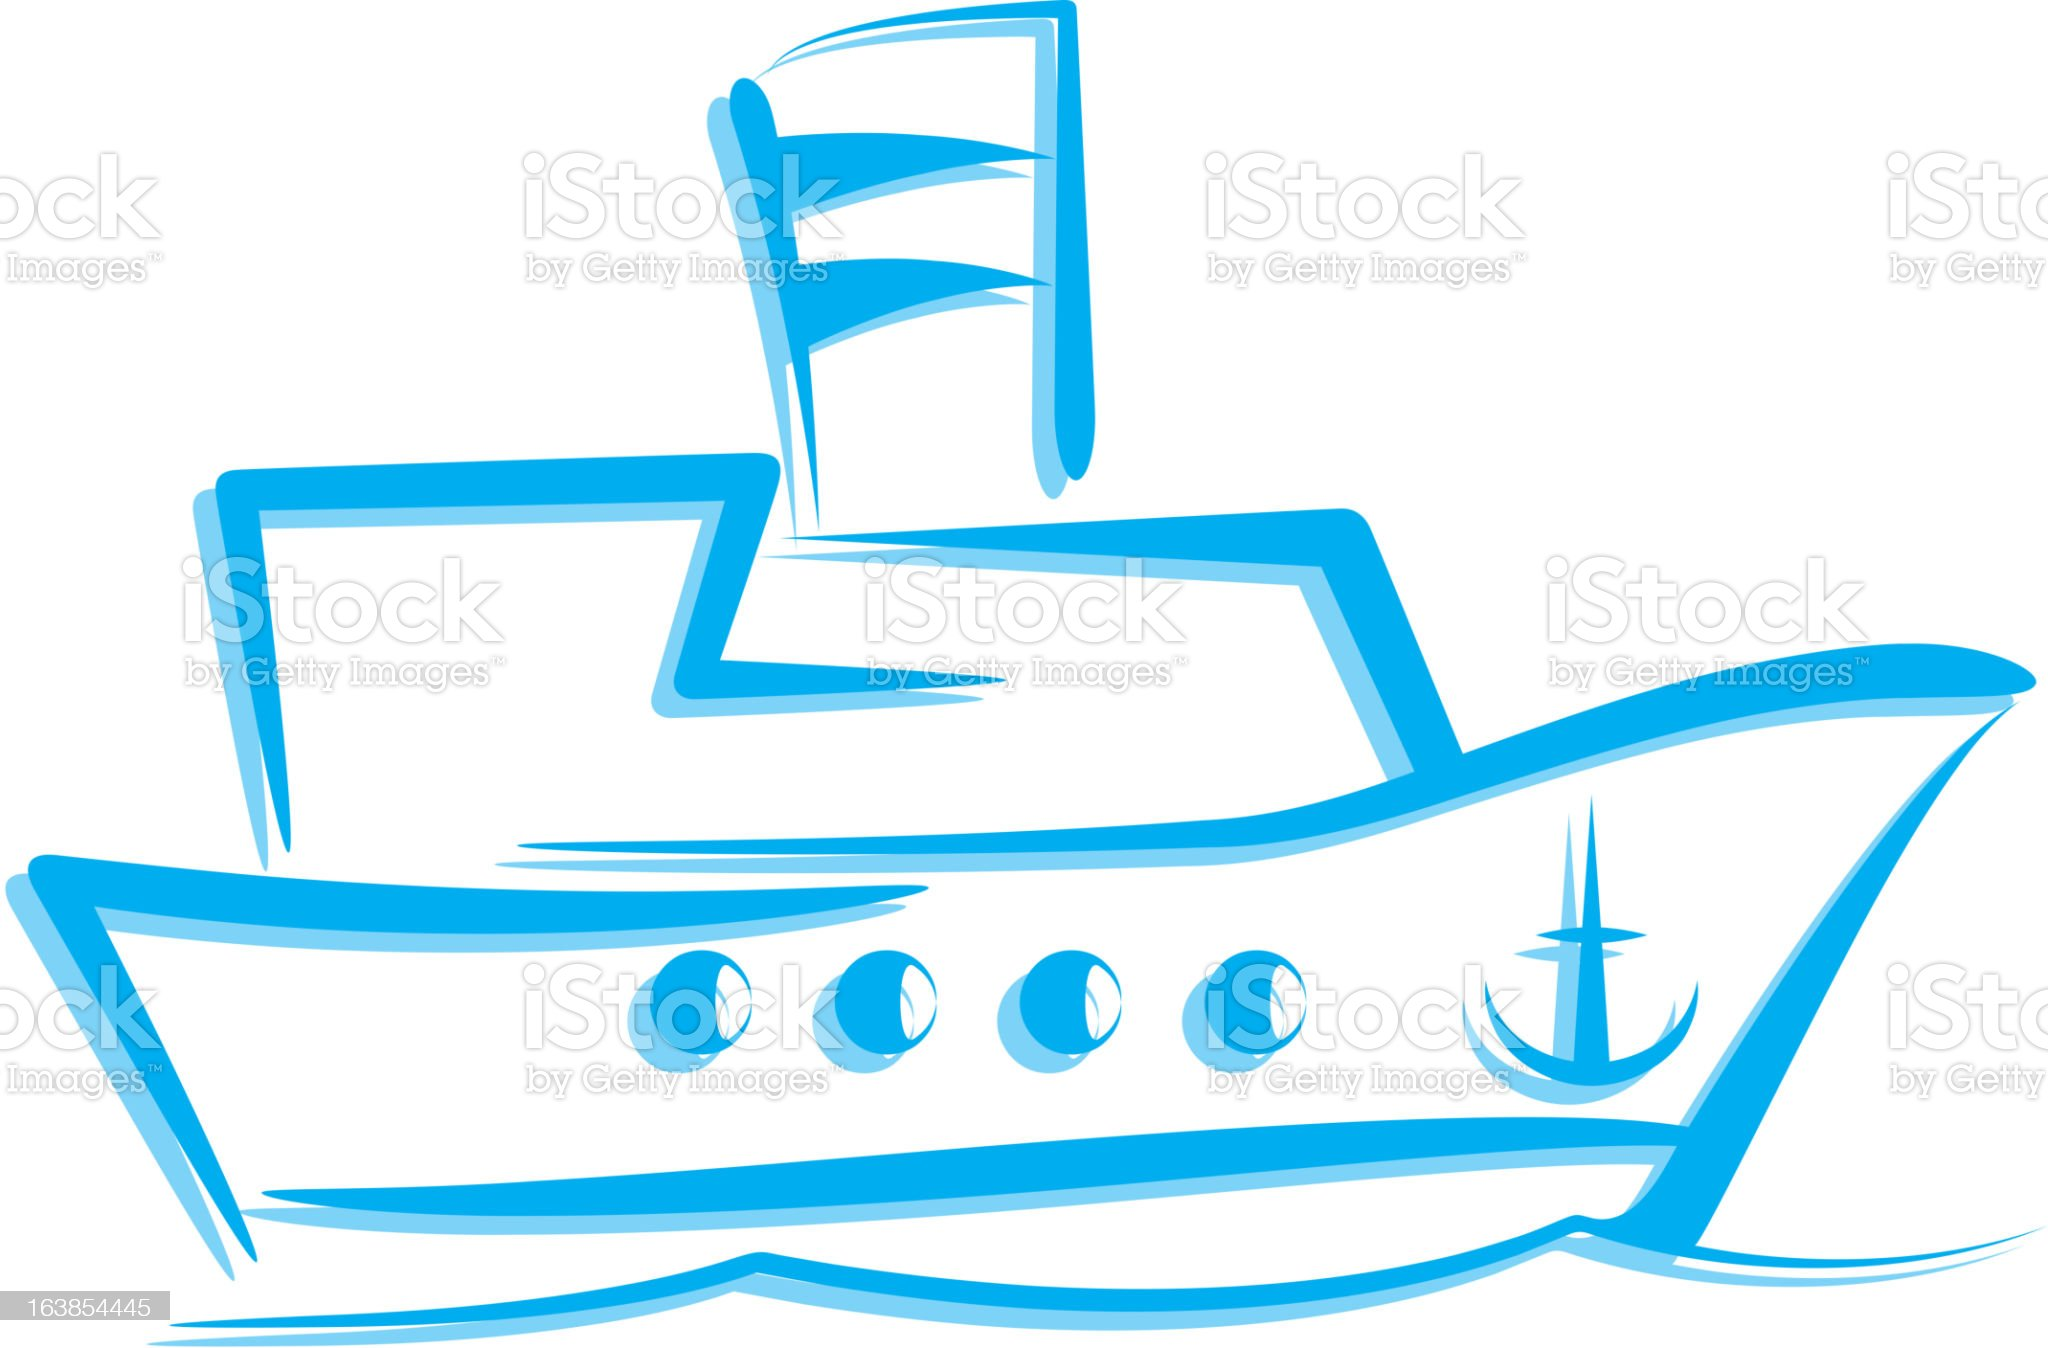 illustration with a ship royalty-free stock vector art